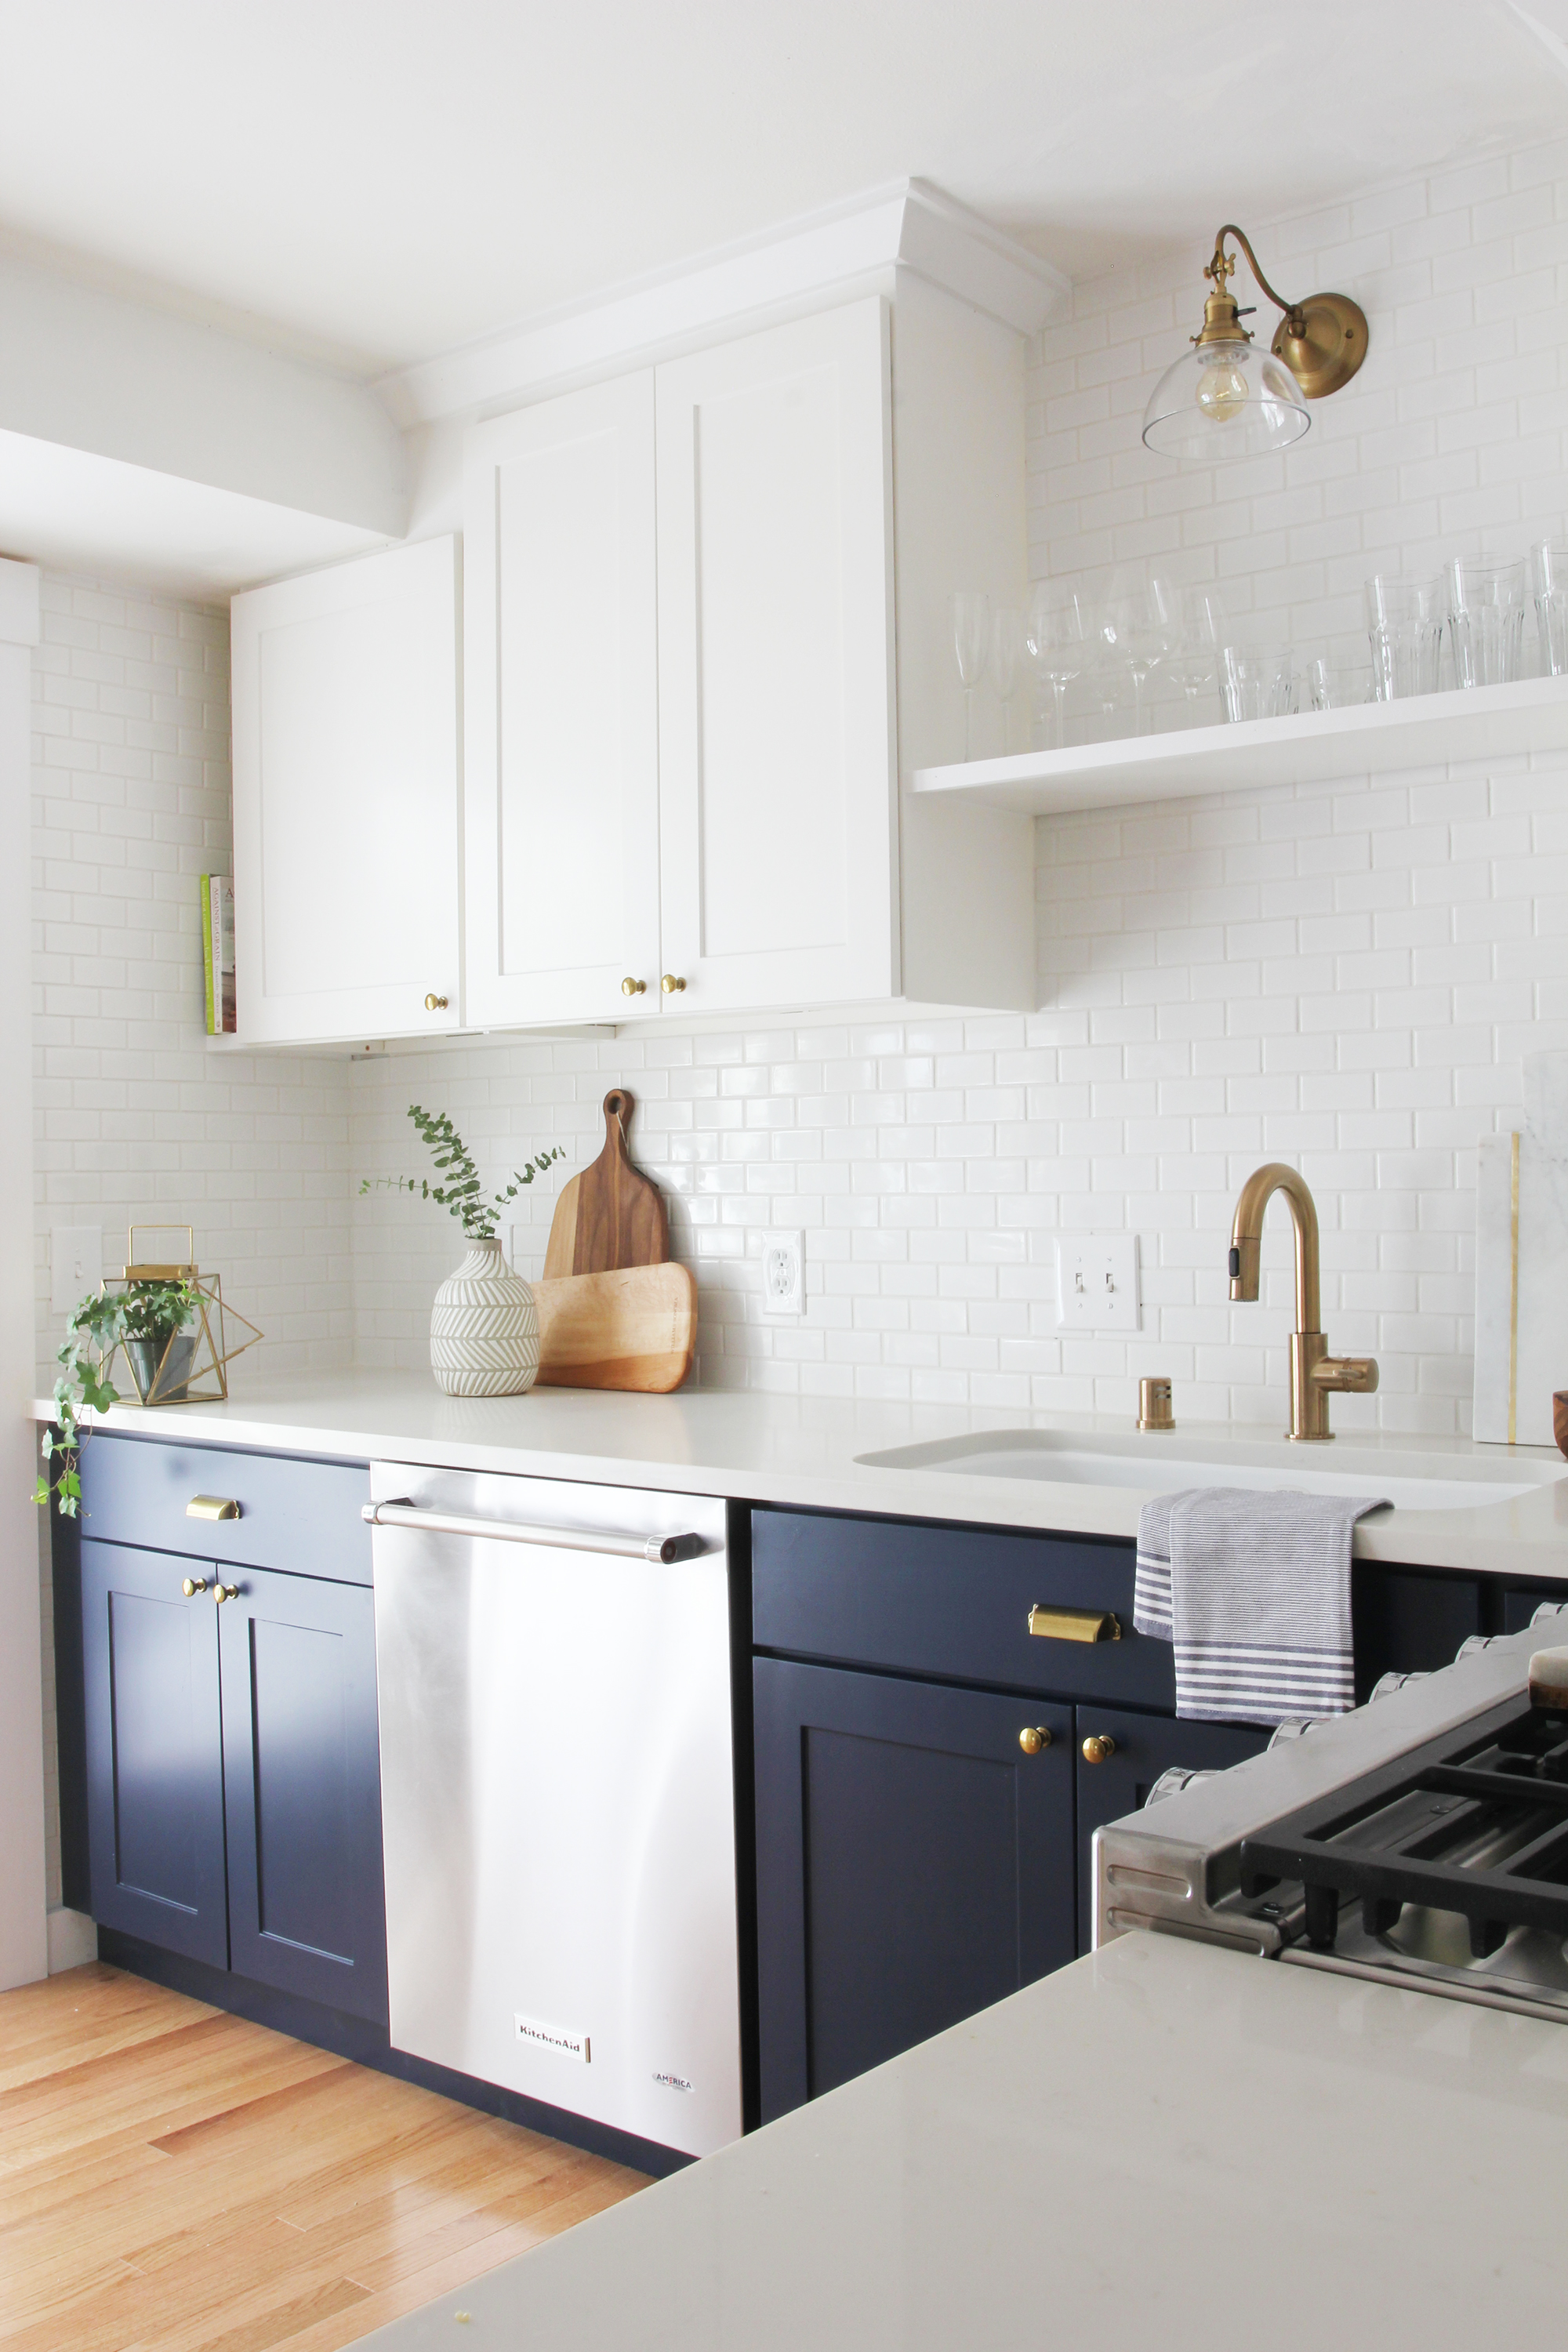 The Grit and Polish - 6 Day Kitchen Reveal 2.jpg